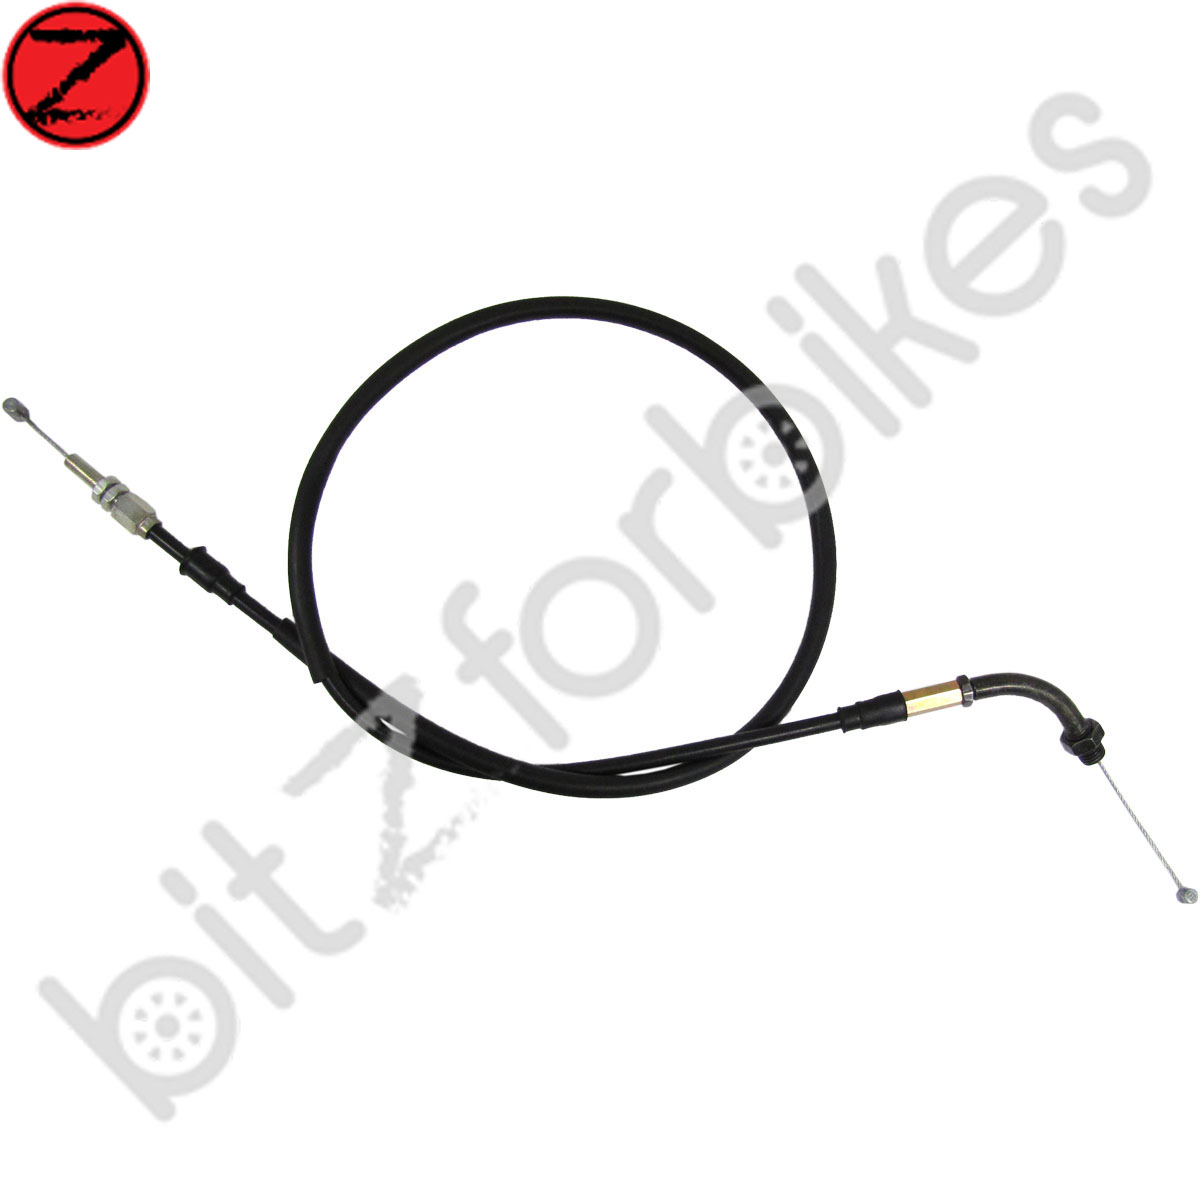 Throttle Cable Pull Honda CB 550 F1 Super Sport Four (1976